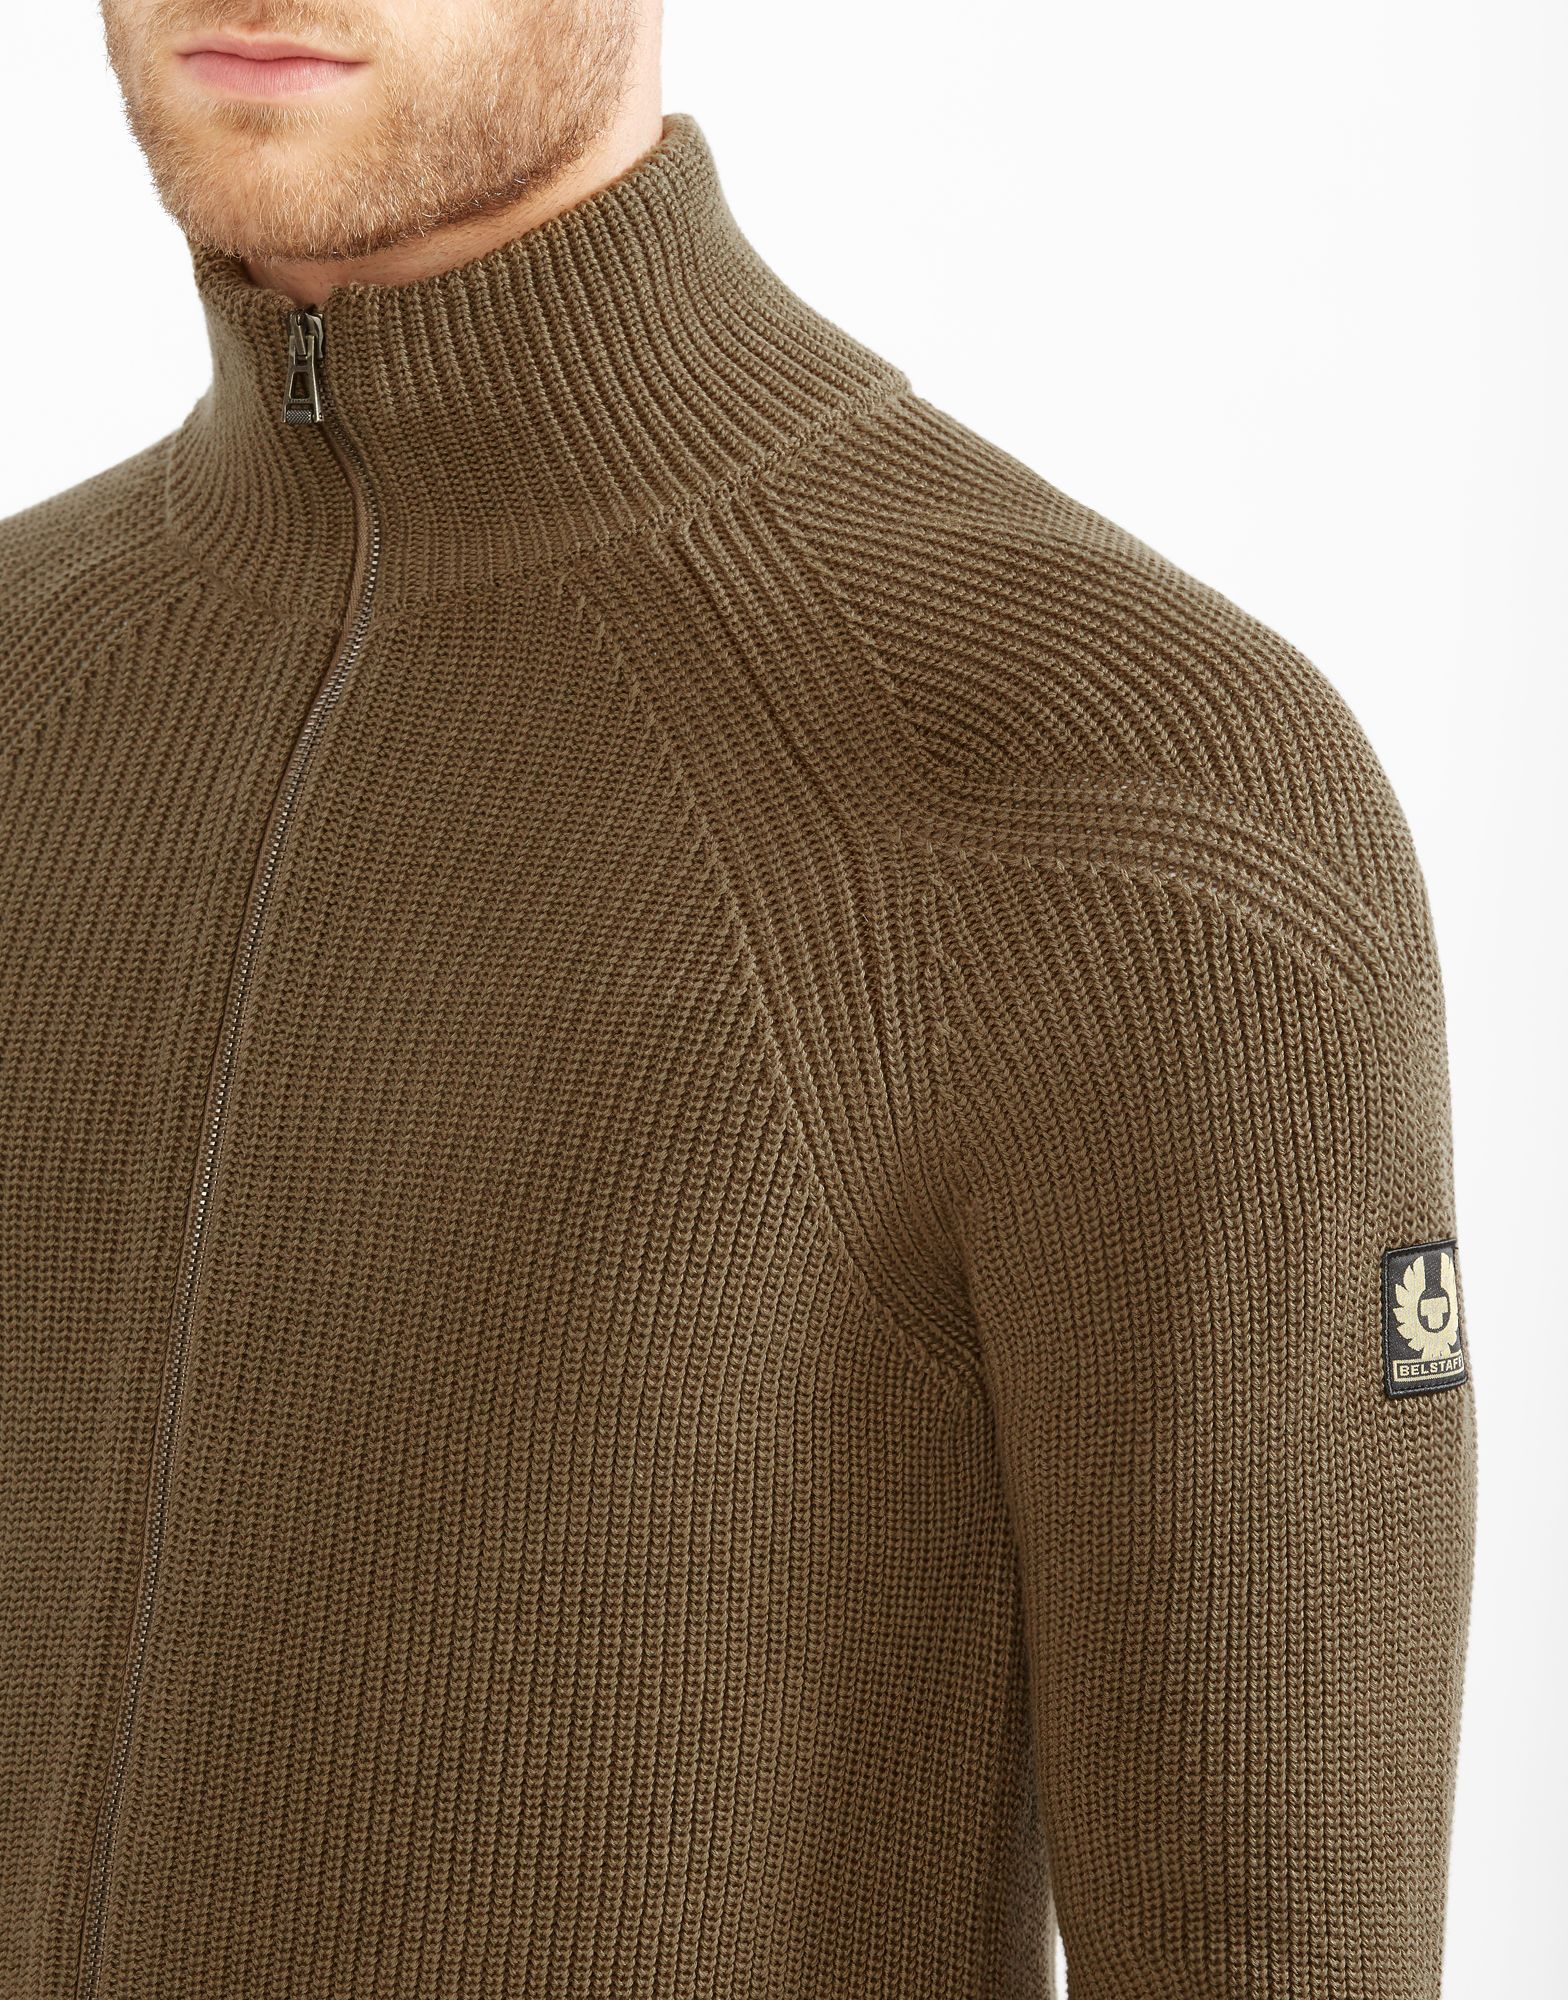 759380a2b97d Parkgate Zip Up Cardigan. Parkgate Zip Up Cardigan Mens Knitted ...